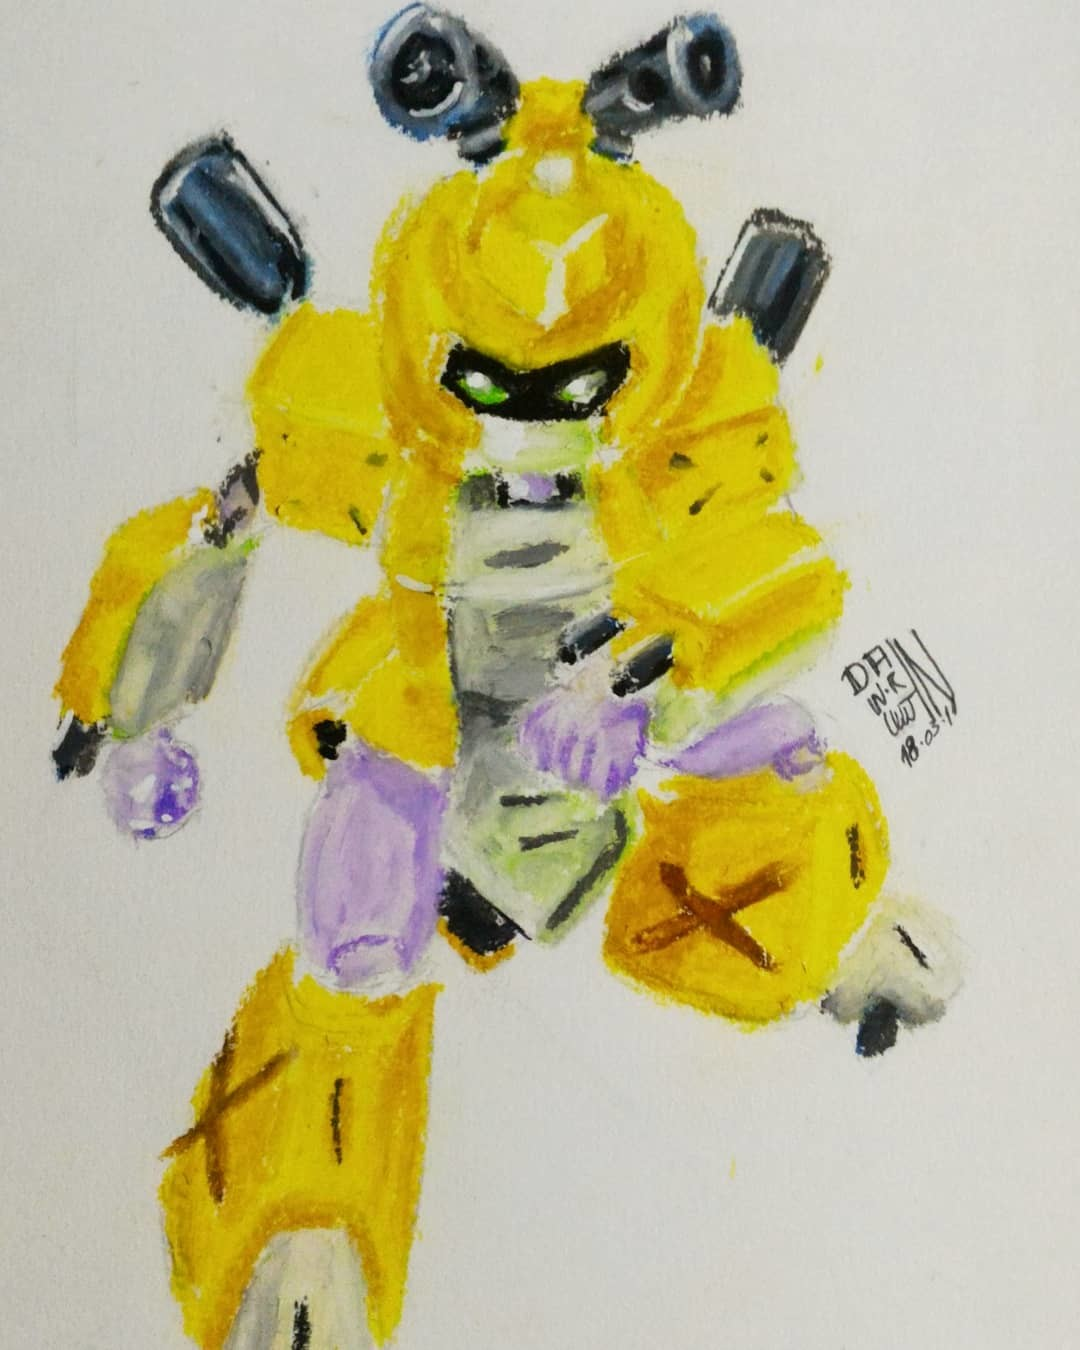 March Of Robots 11 - Metabee - Medabots.. Oil pastels.